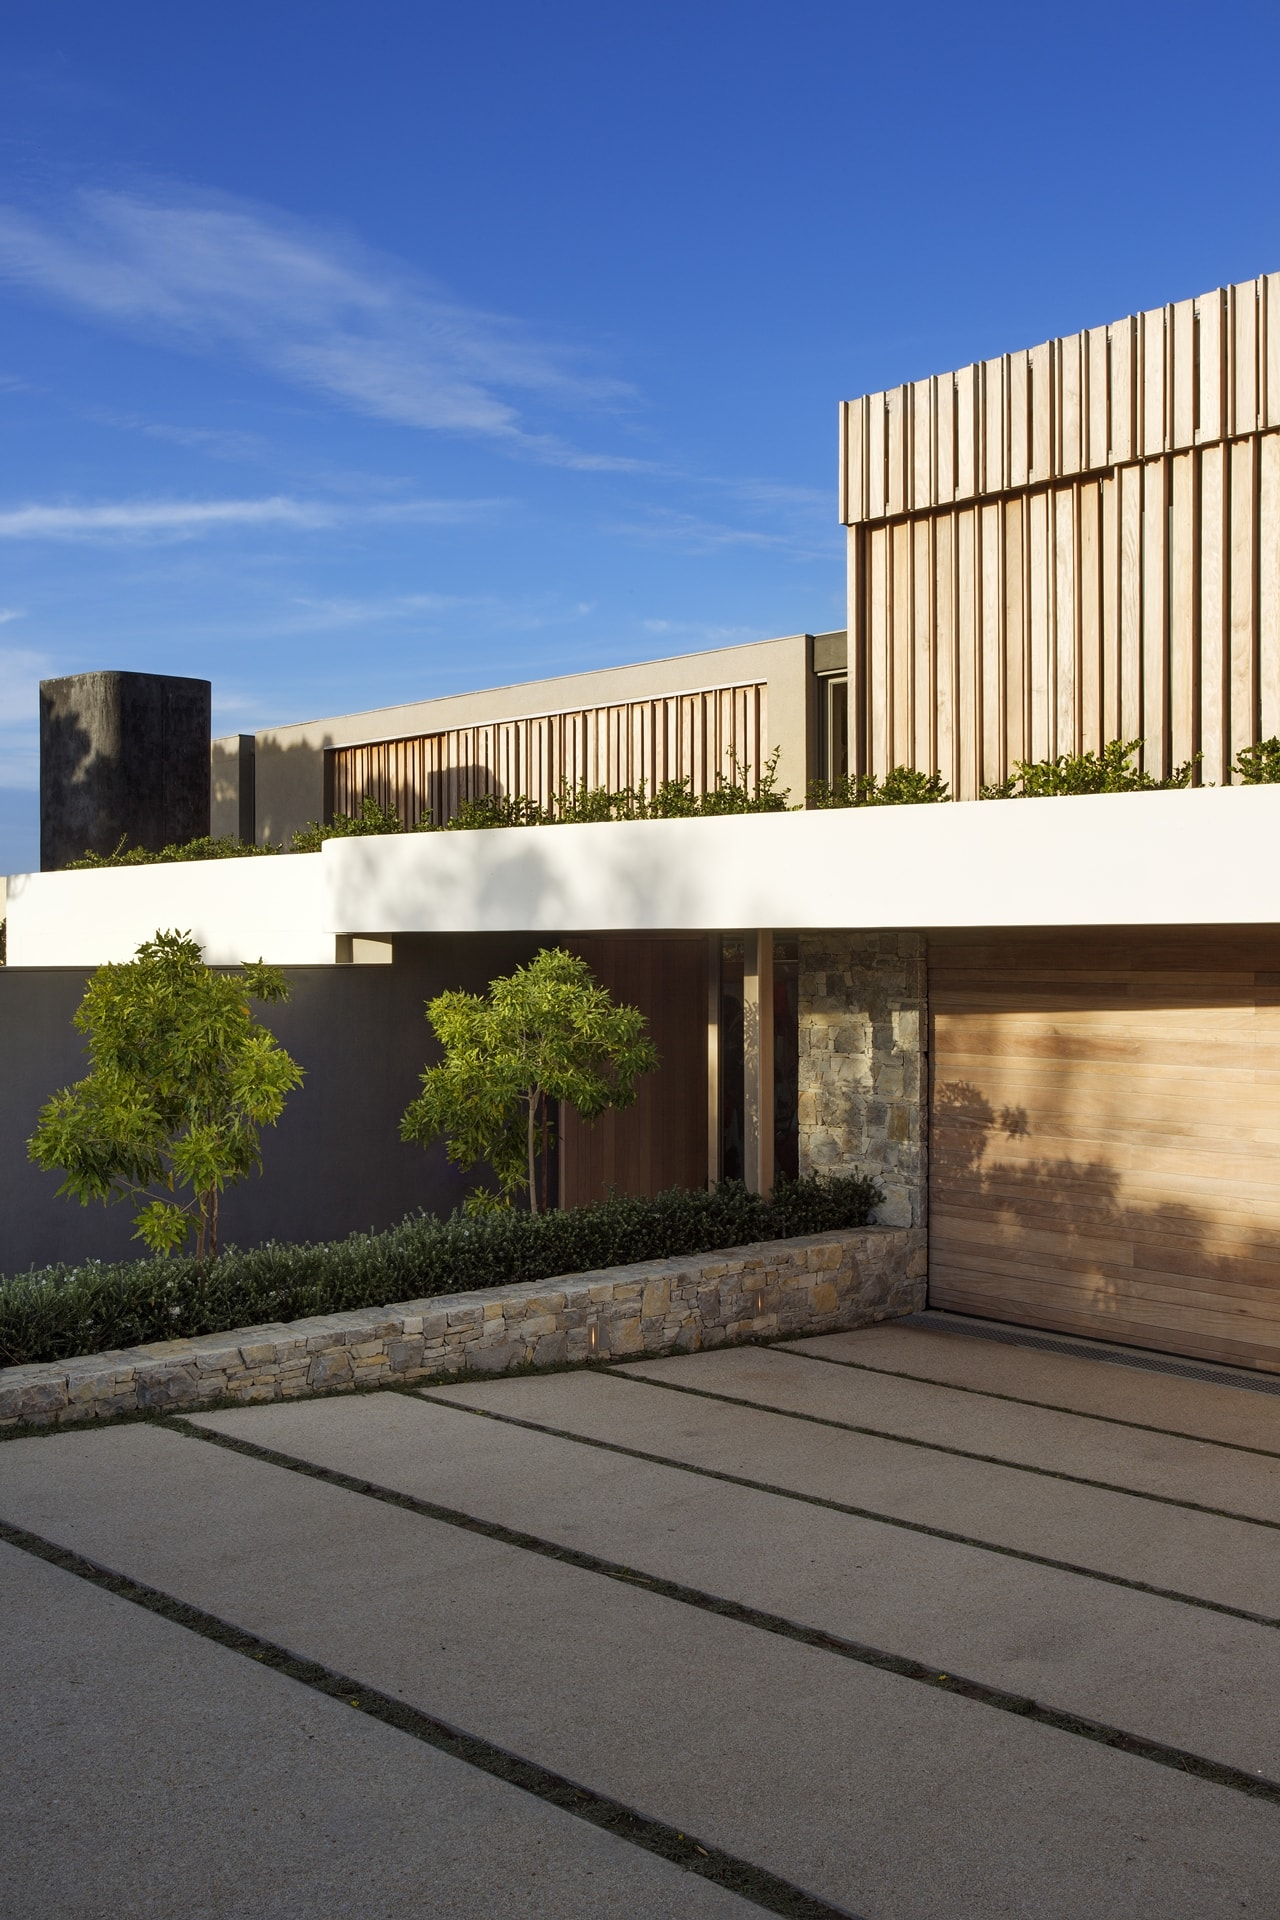 Home Design Ideas Exterior: Wooden Facade: Modern House Design By SAOTA